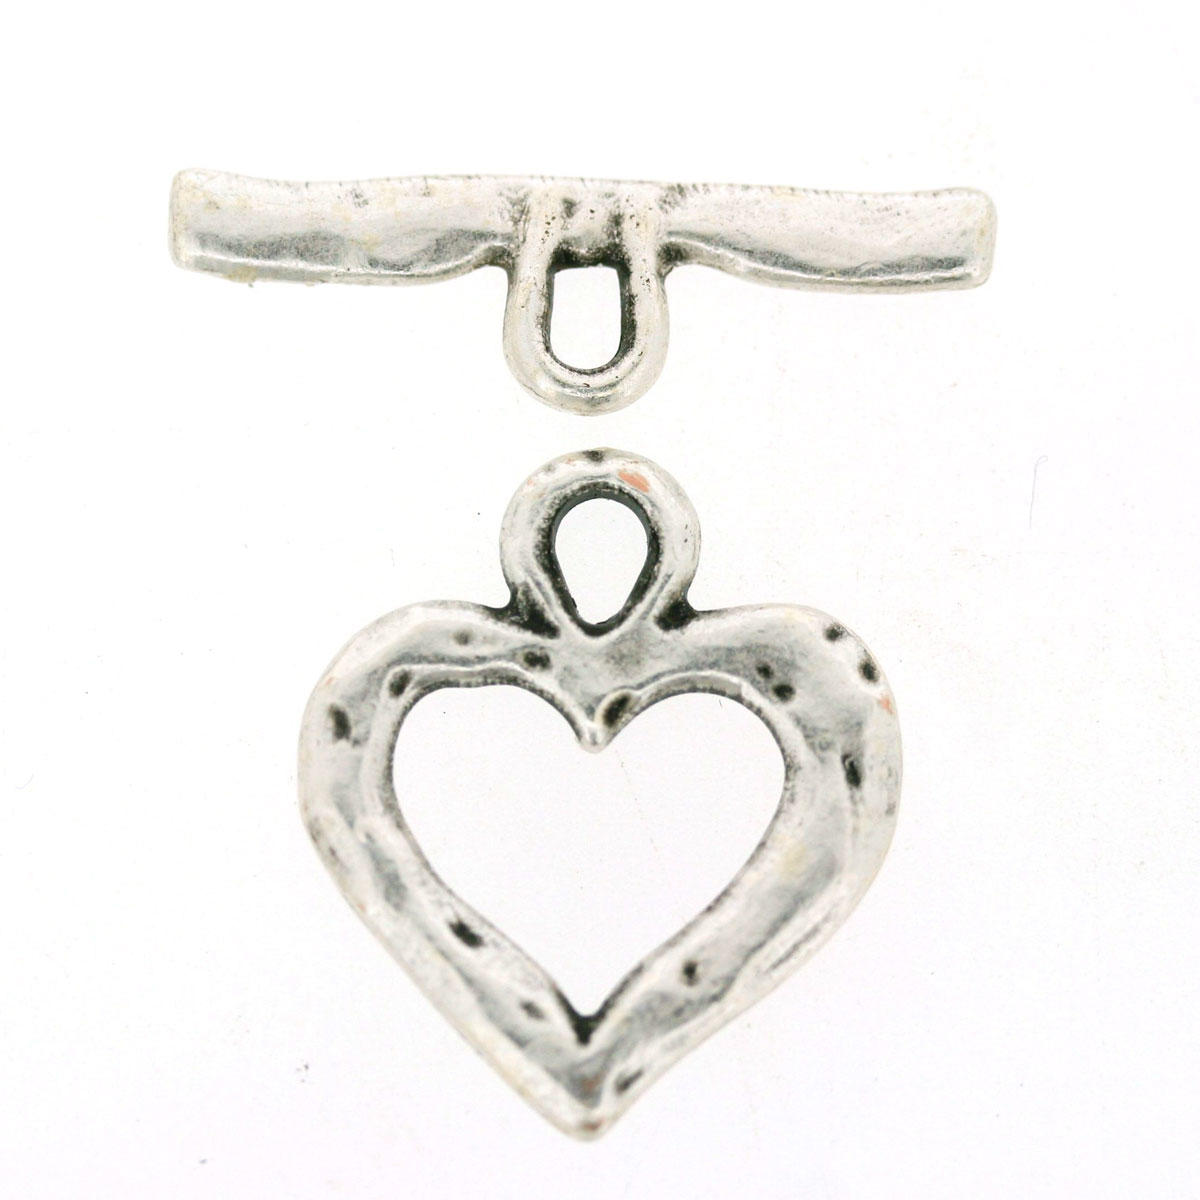 Antique Silver Heart Toggle Jewellery Component